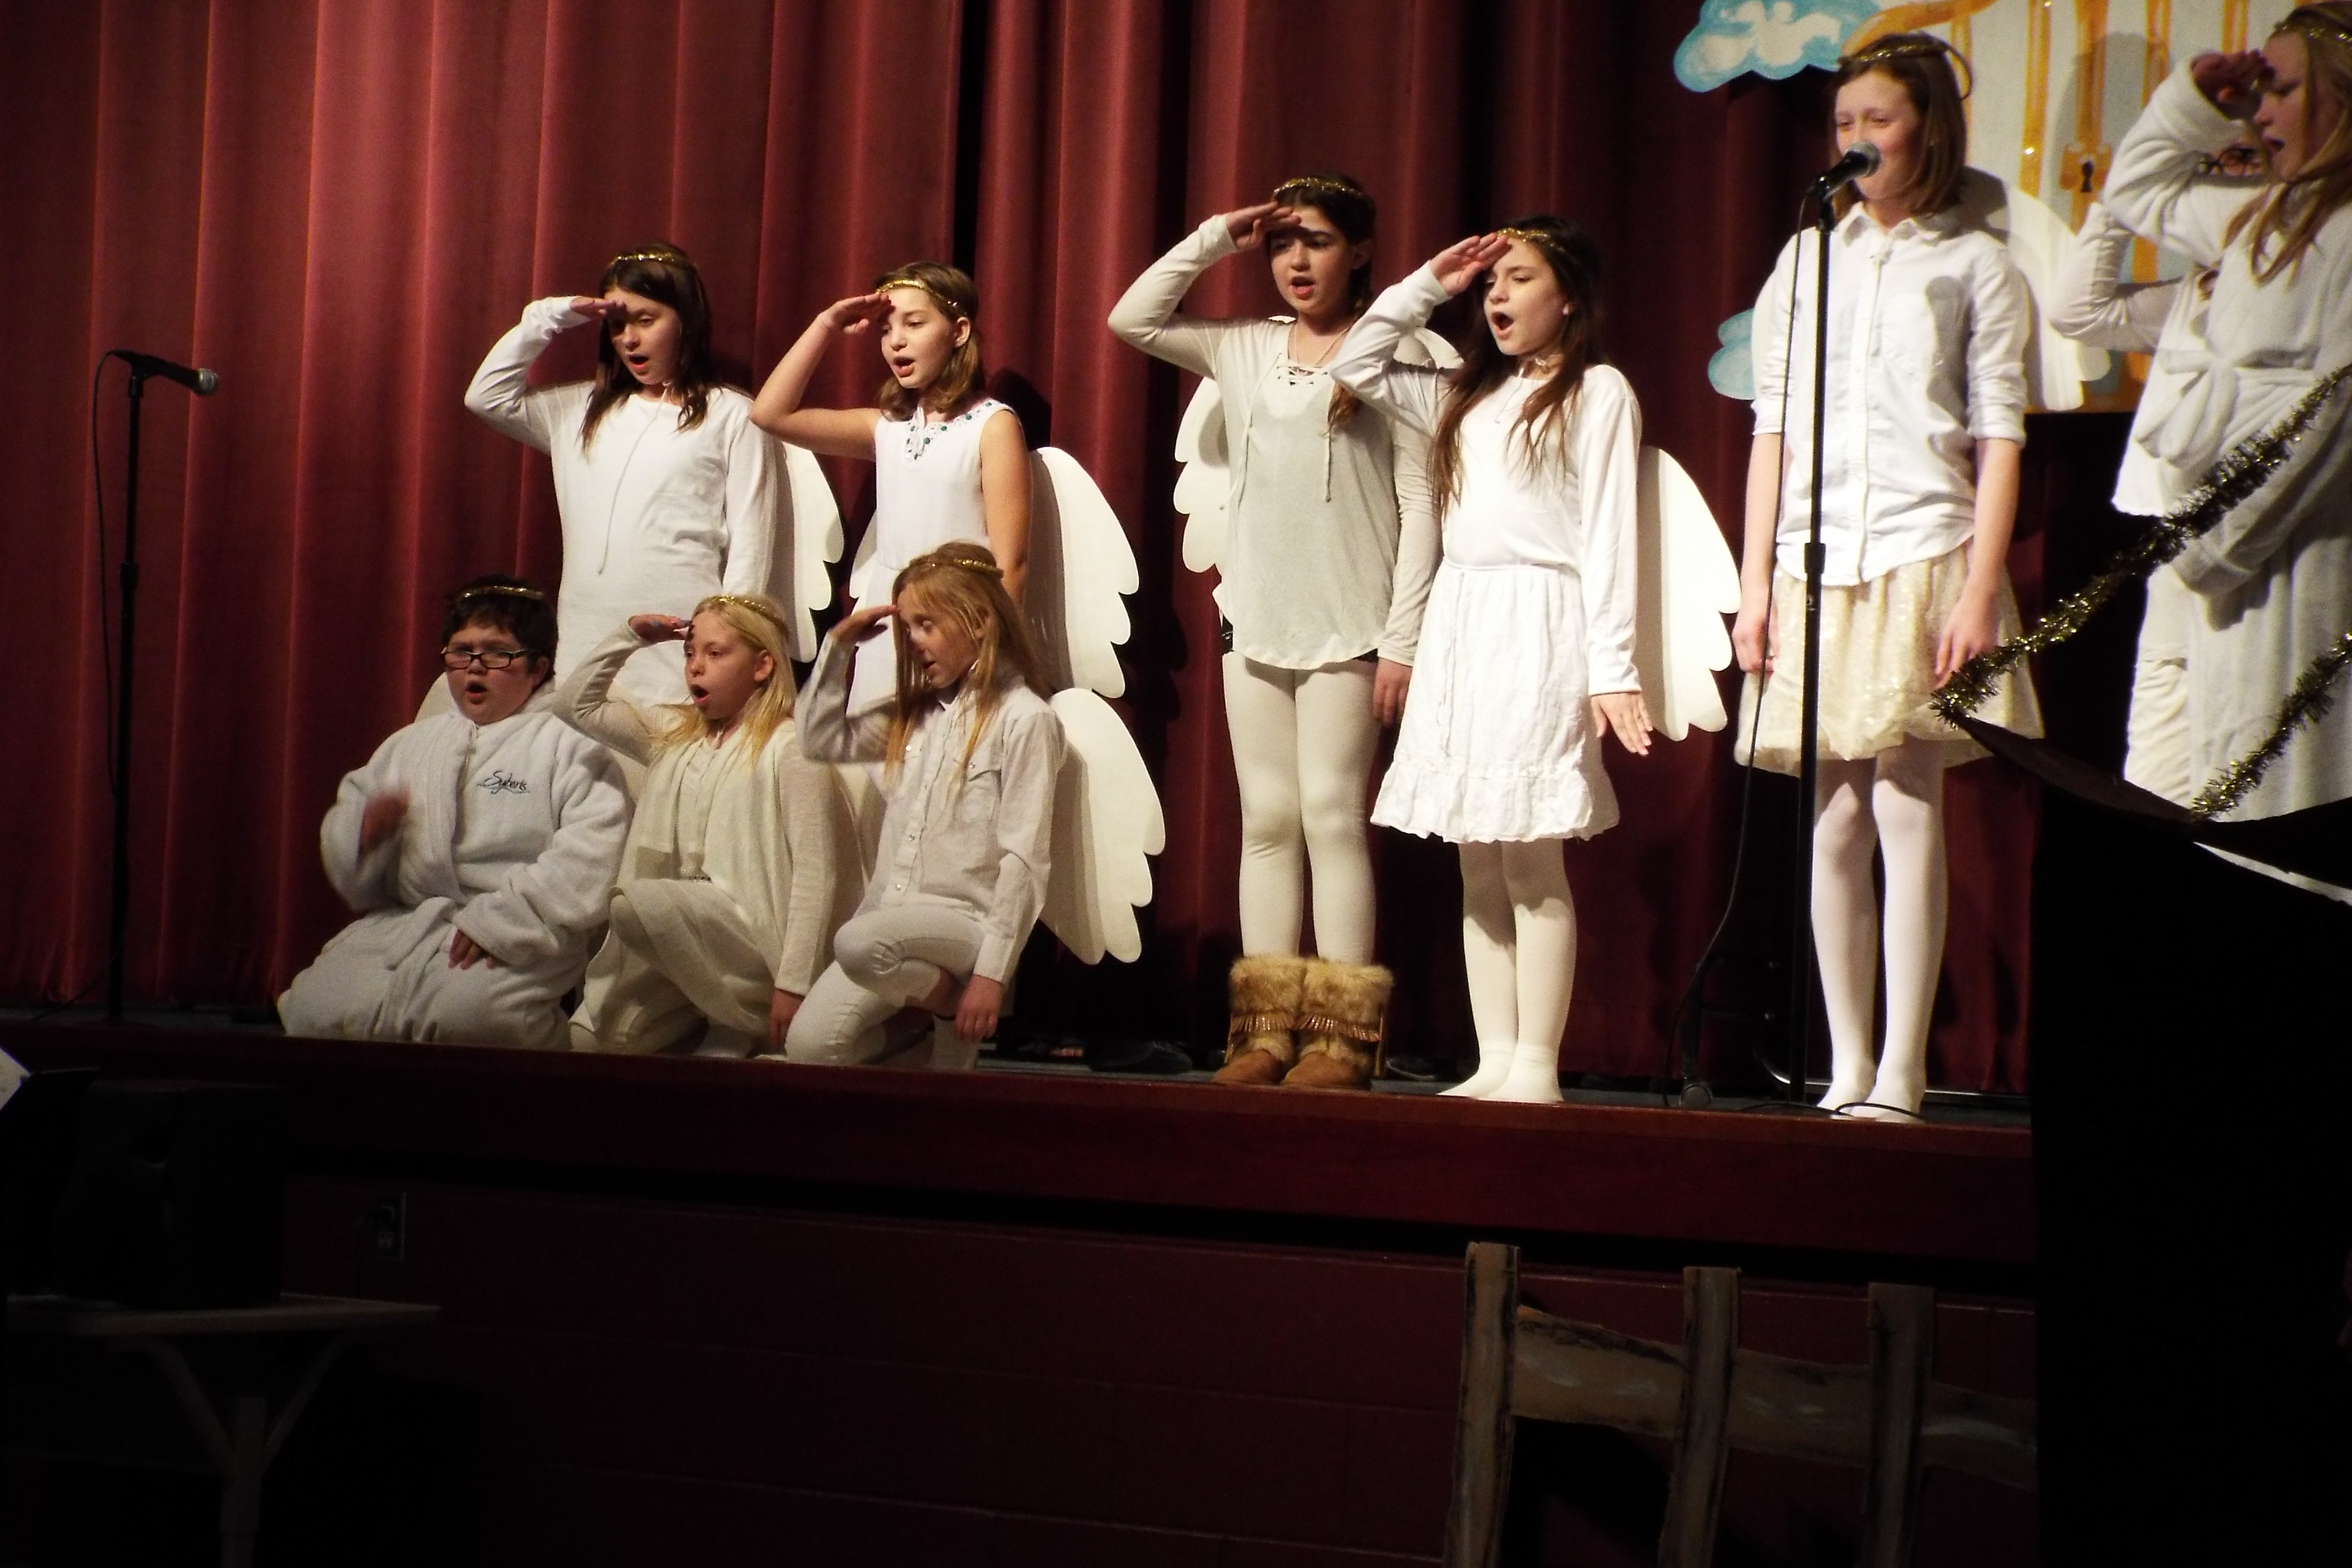 Angels in the Christmas Program